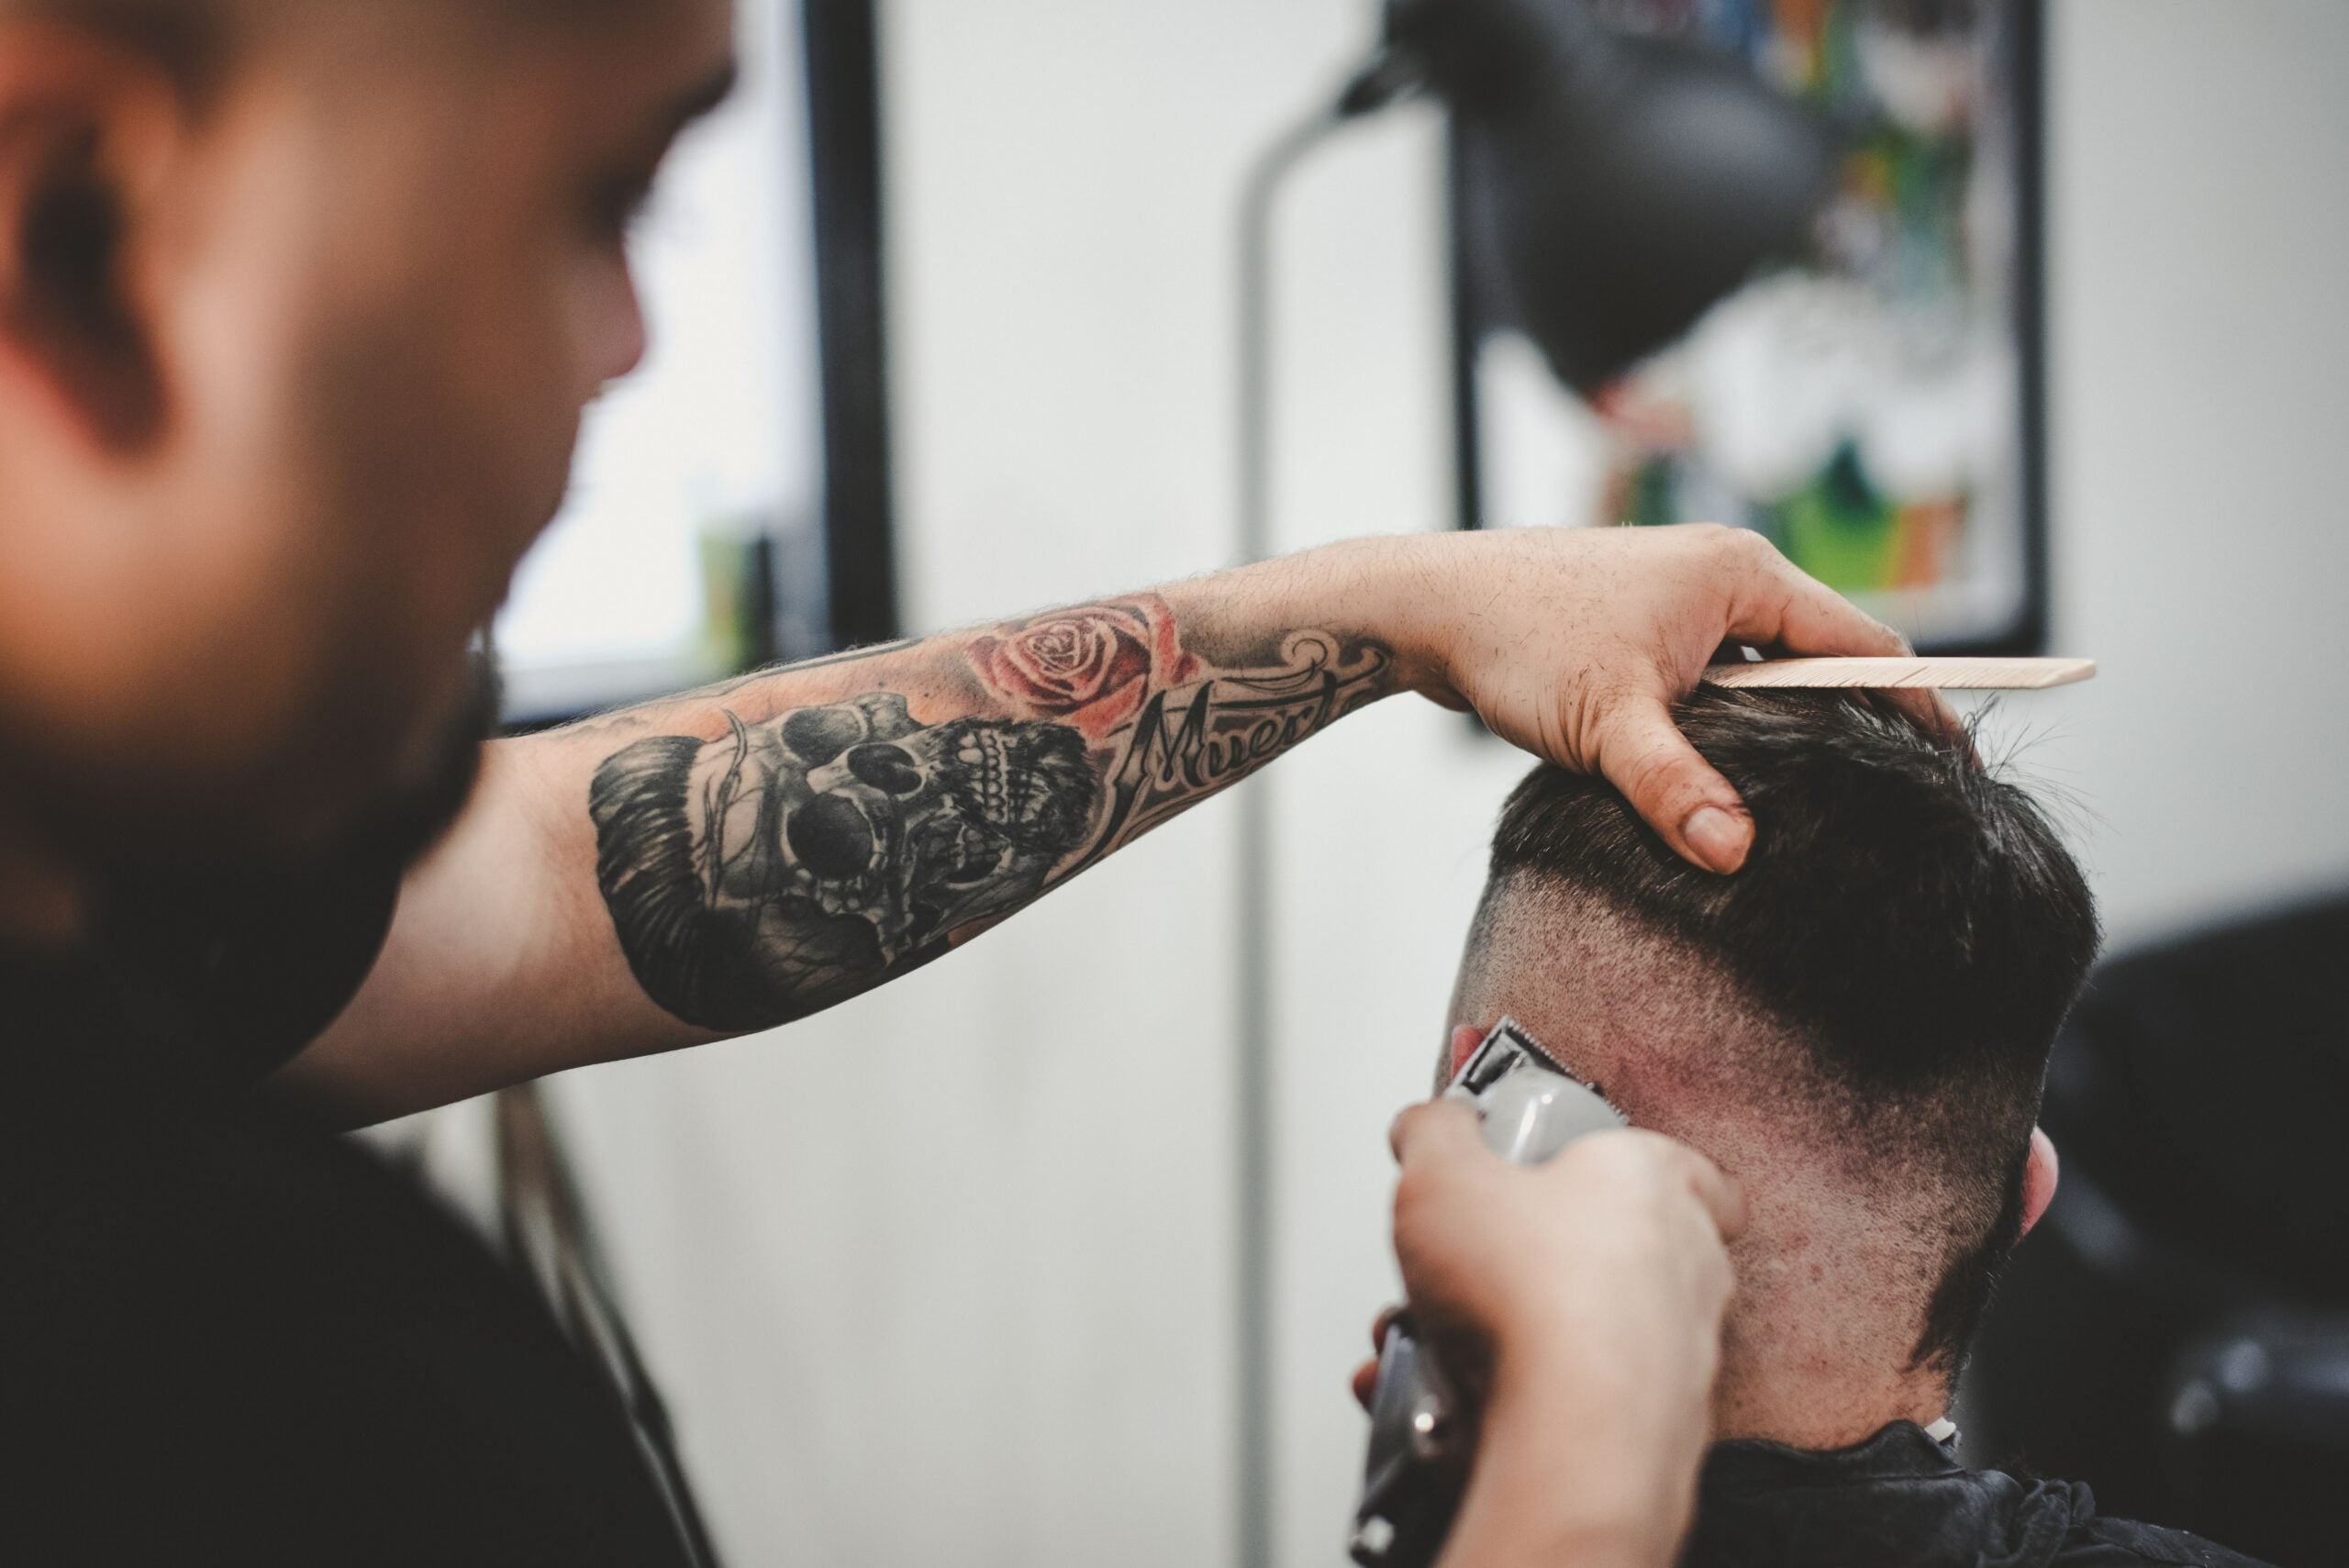 man with tattooed arms using clippers to cut another man's hair